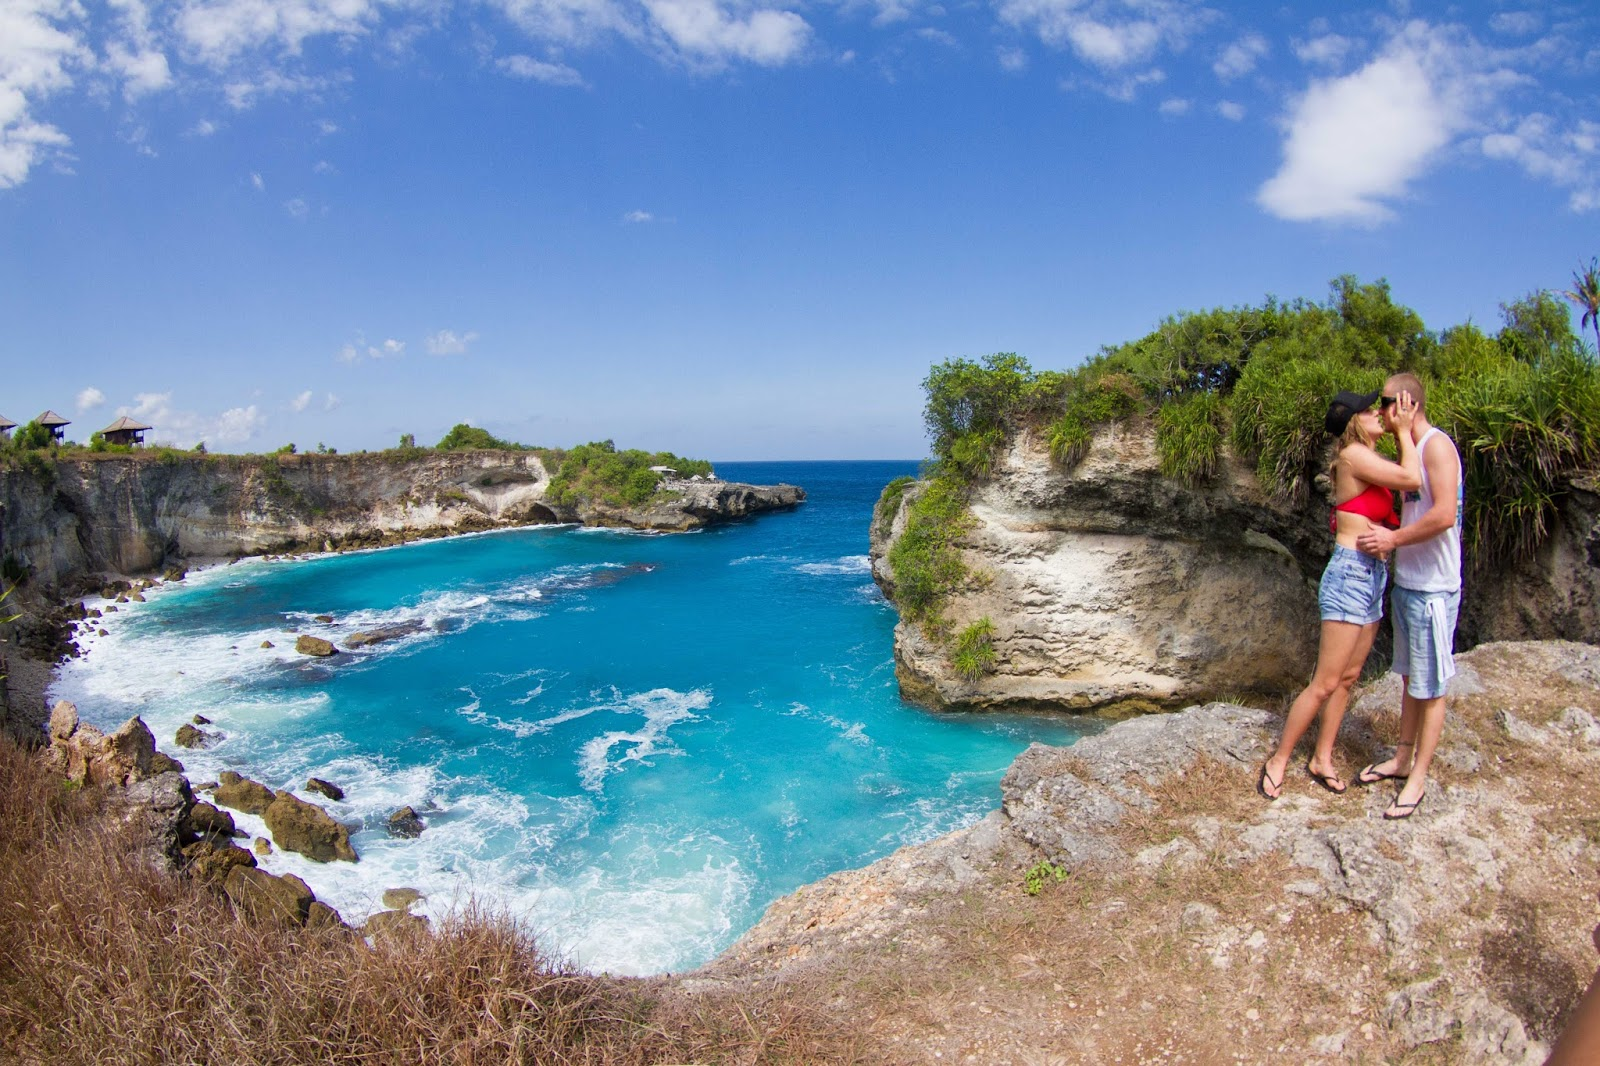 The Beauty Of The Tourist Spots In Bali